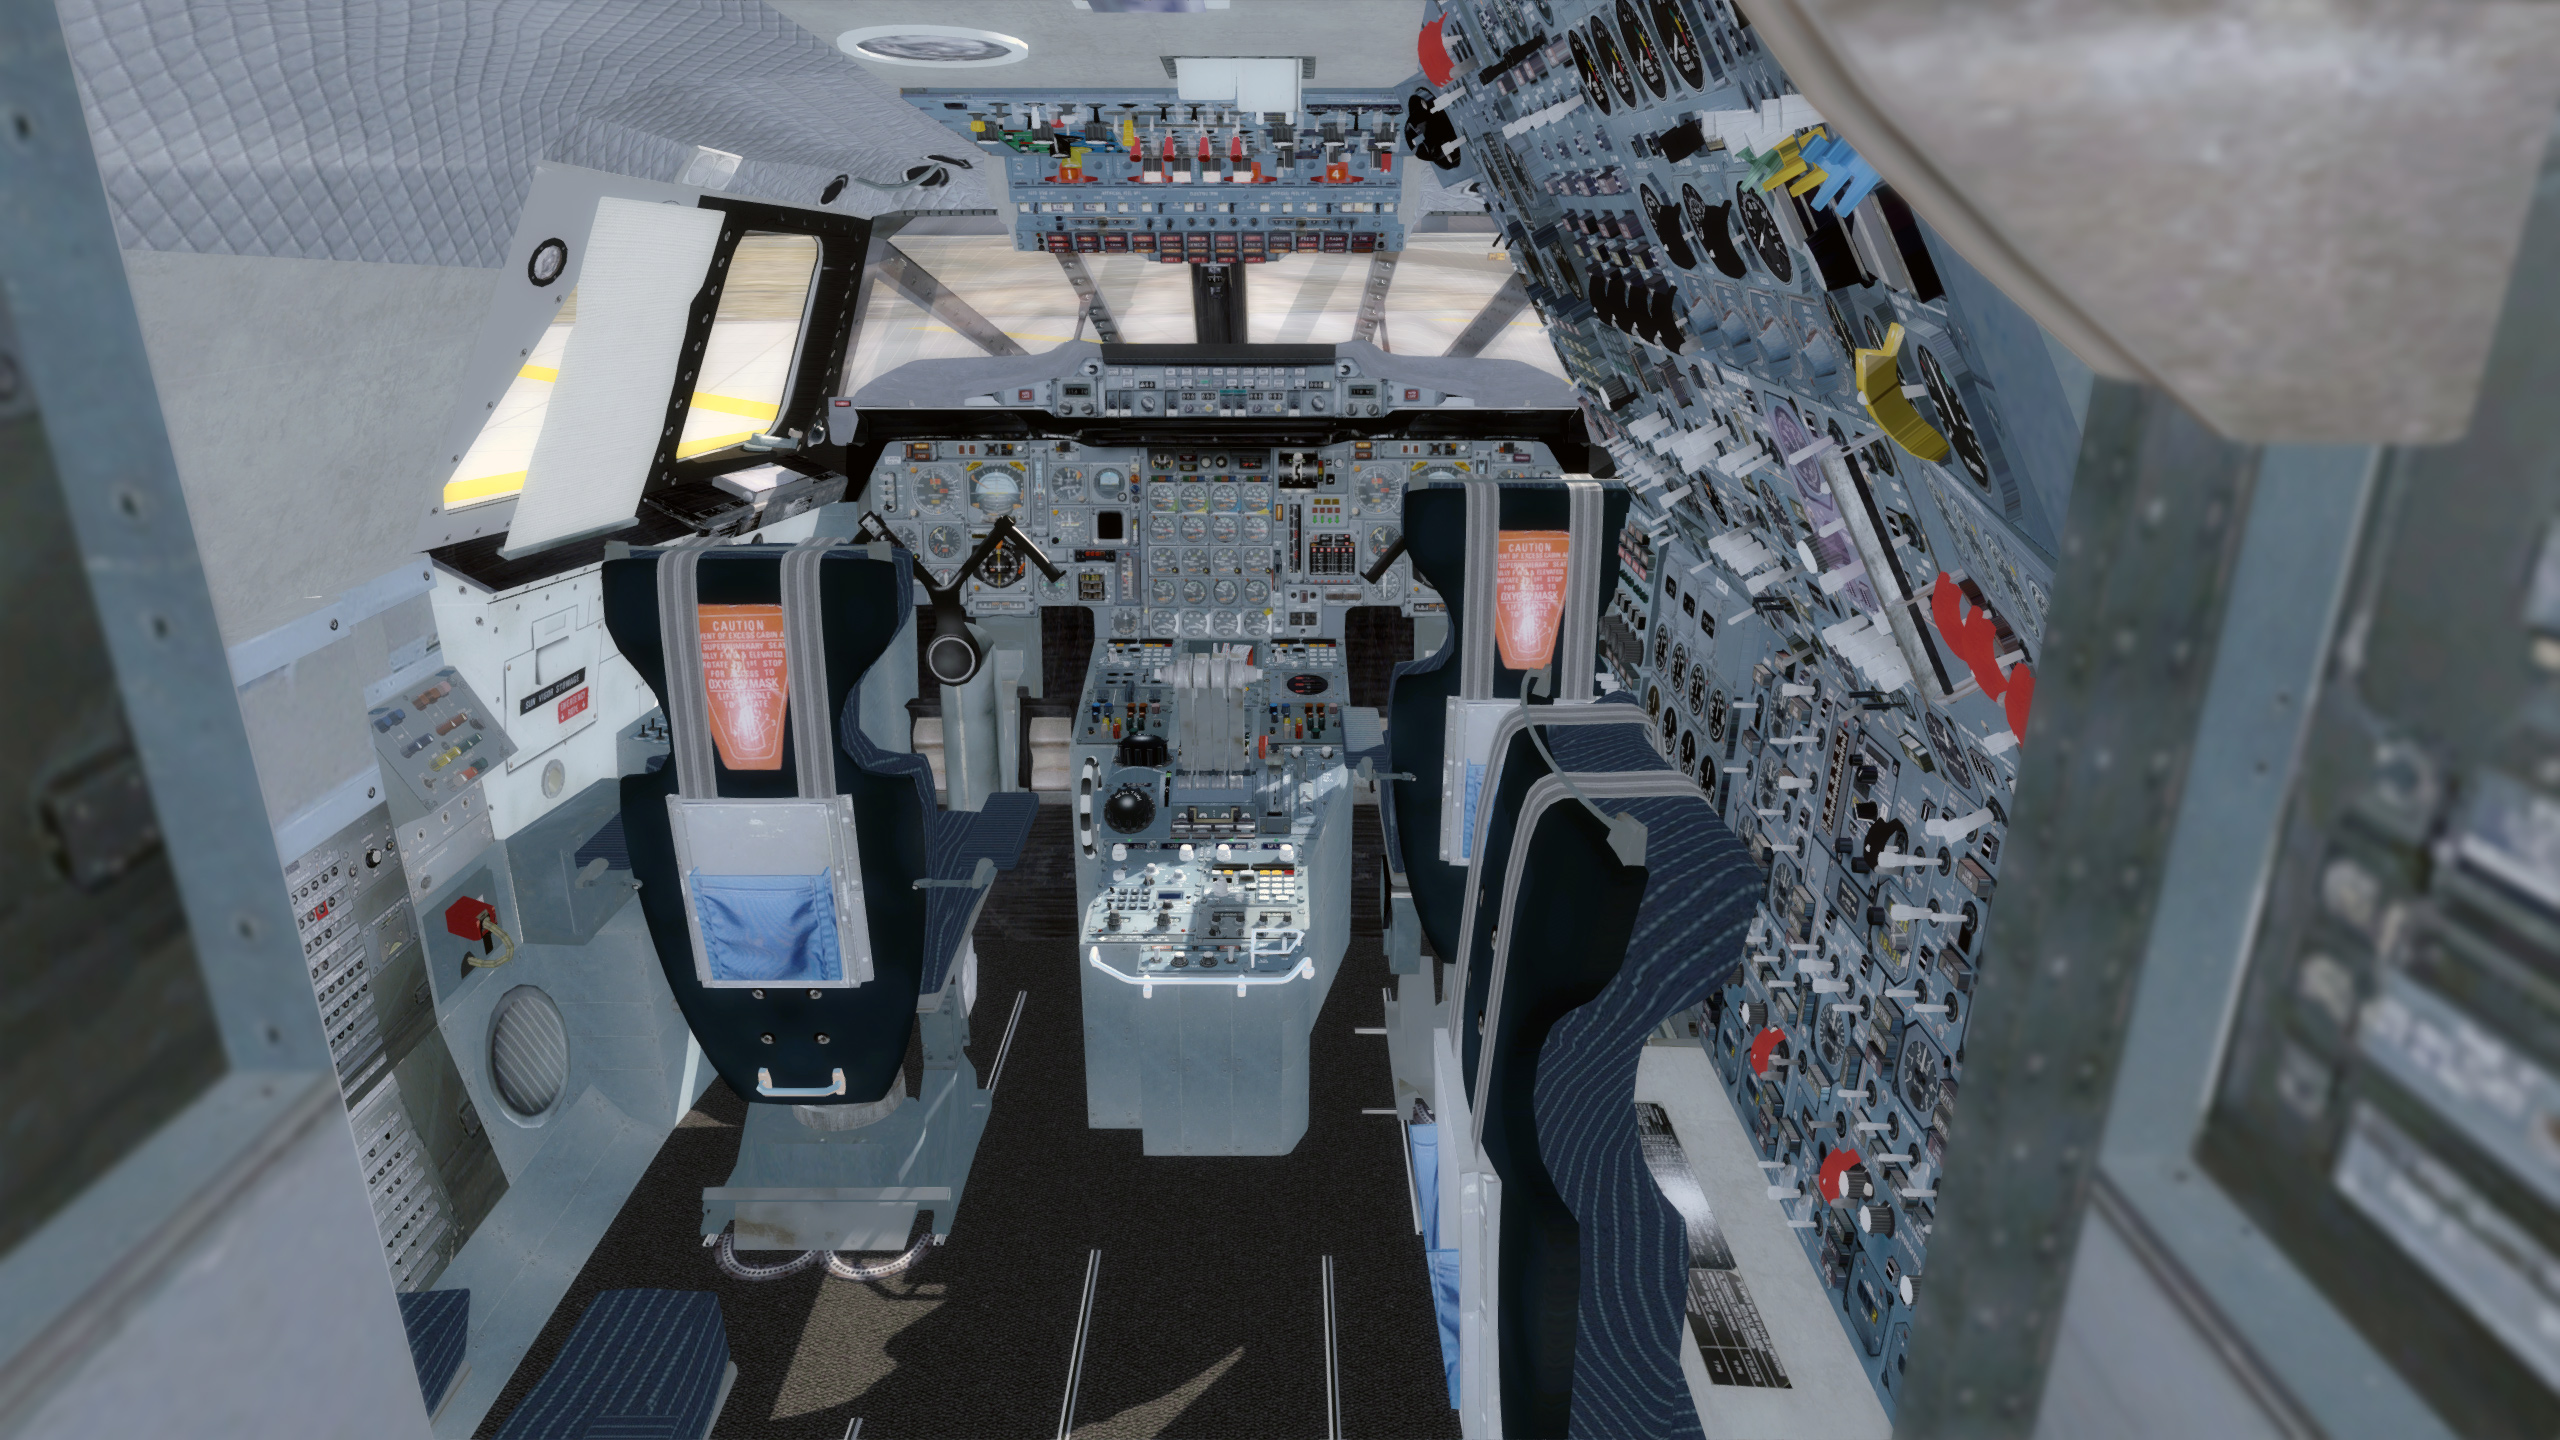 cockpit-gang-naar-cockpit-3.jpg